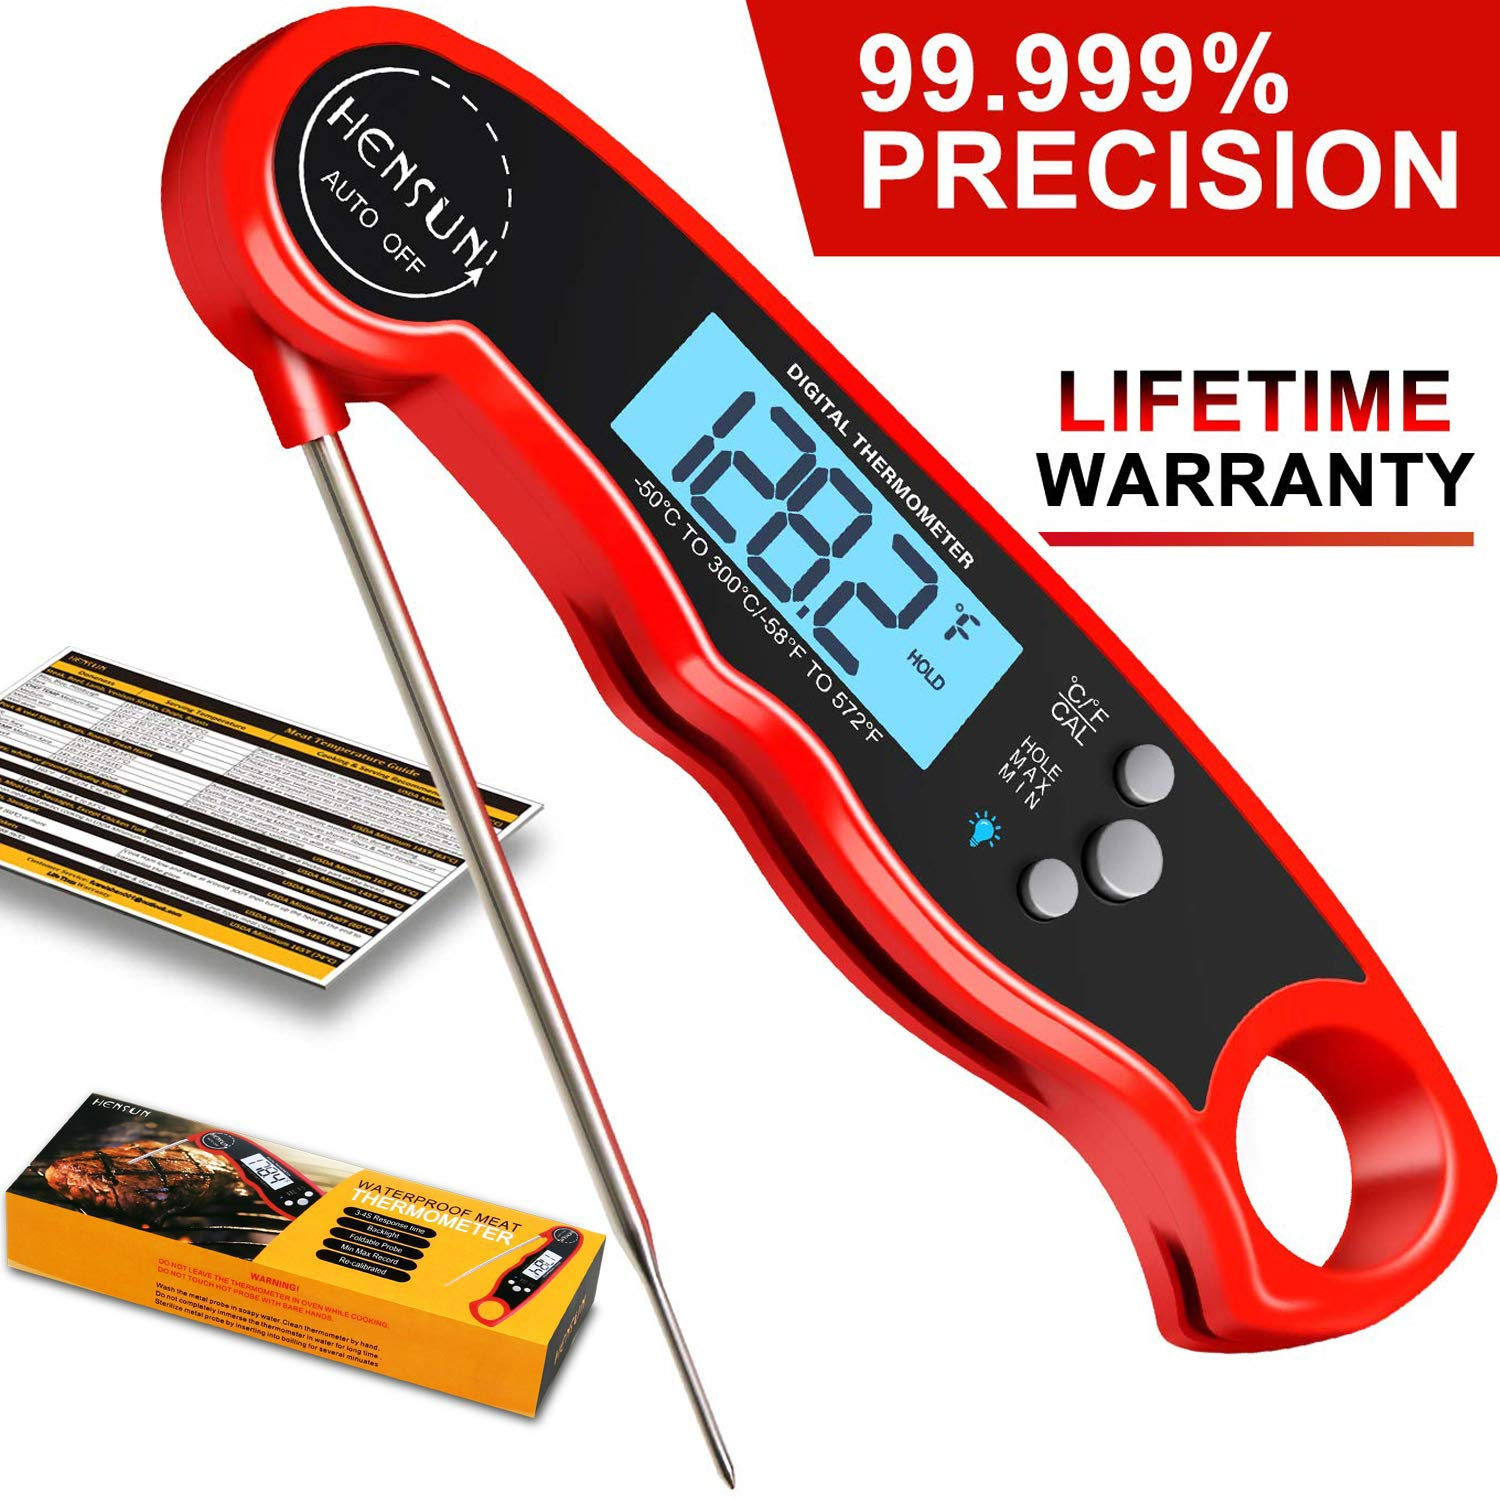 KOFOHO Meat Food Thermometer,Digital Instant Read Waterproof Kitchen Cooking Beef Candy Quick Read Thermometer with Foldable Probe for Oil Deep Fry BBQ Grill Smokers by KOFOHO